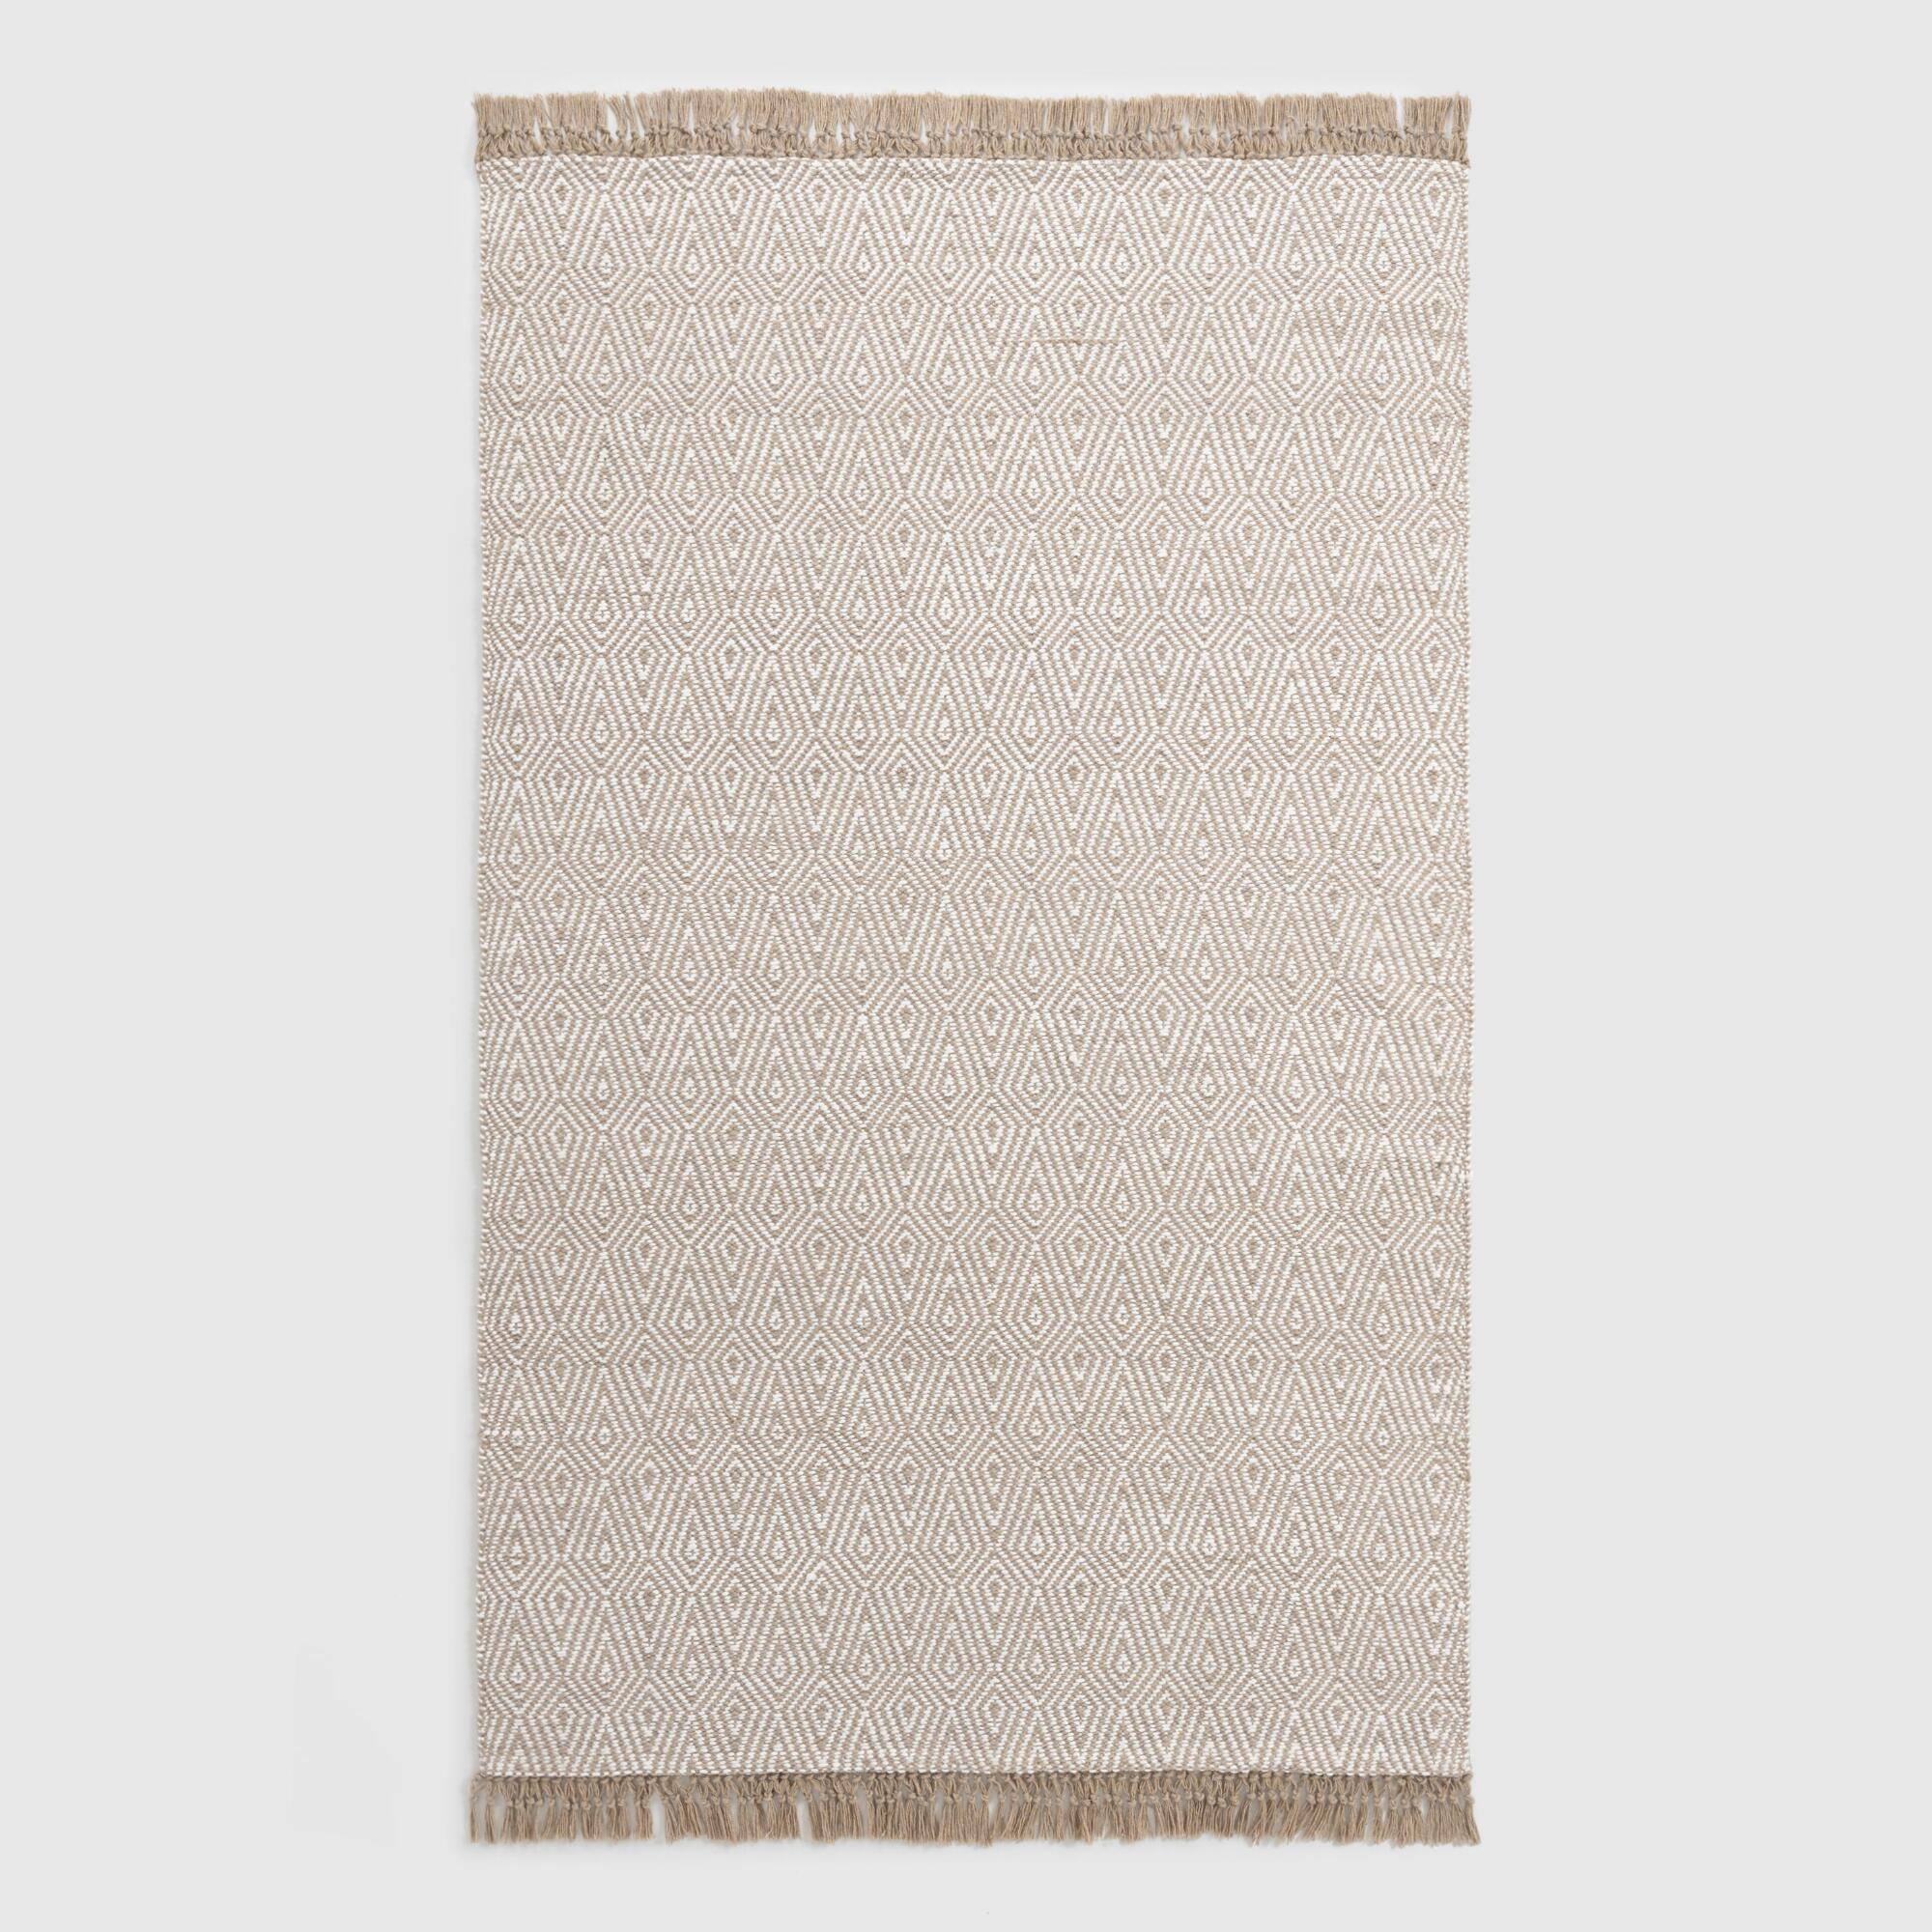 A diamond pattern and fringed edges dress up this neutral handwoven rug.BUY IT: from $150; worldmarket.com